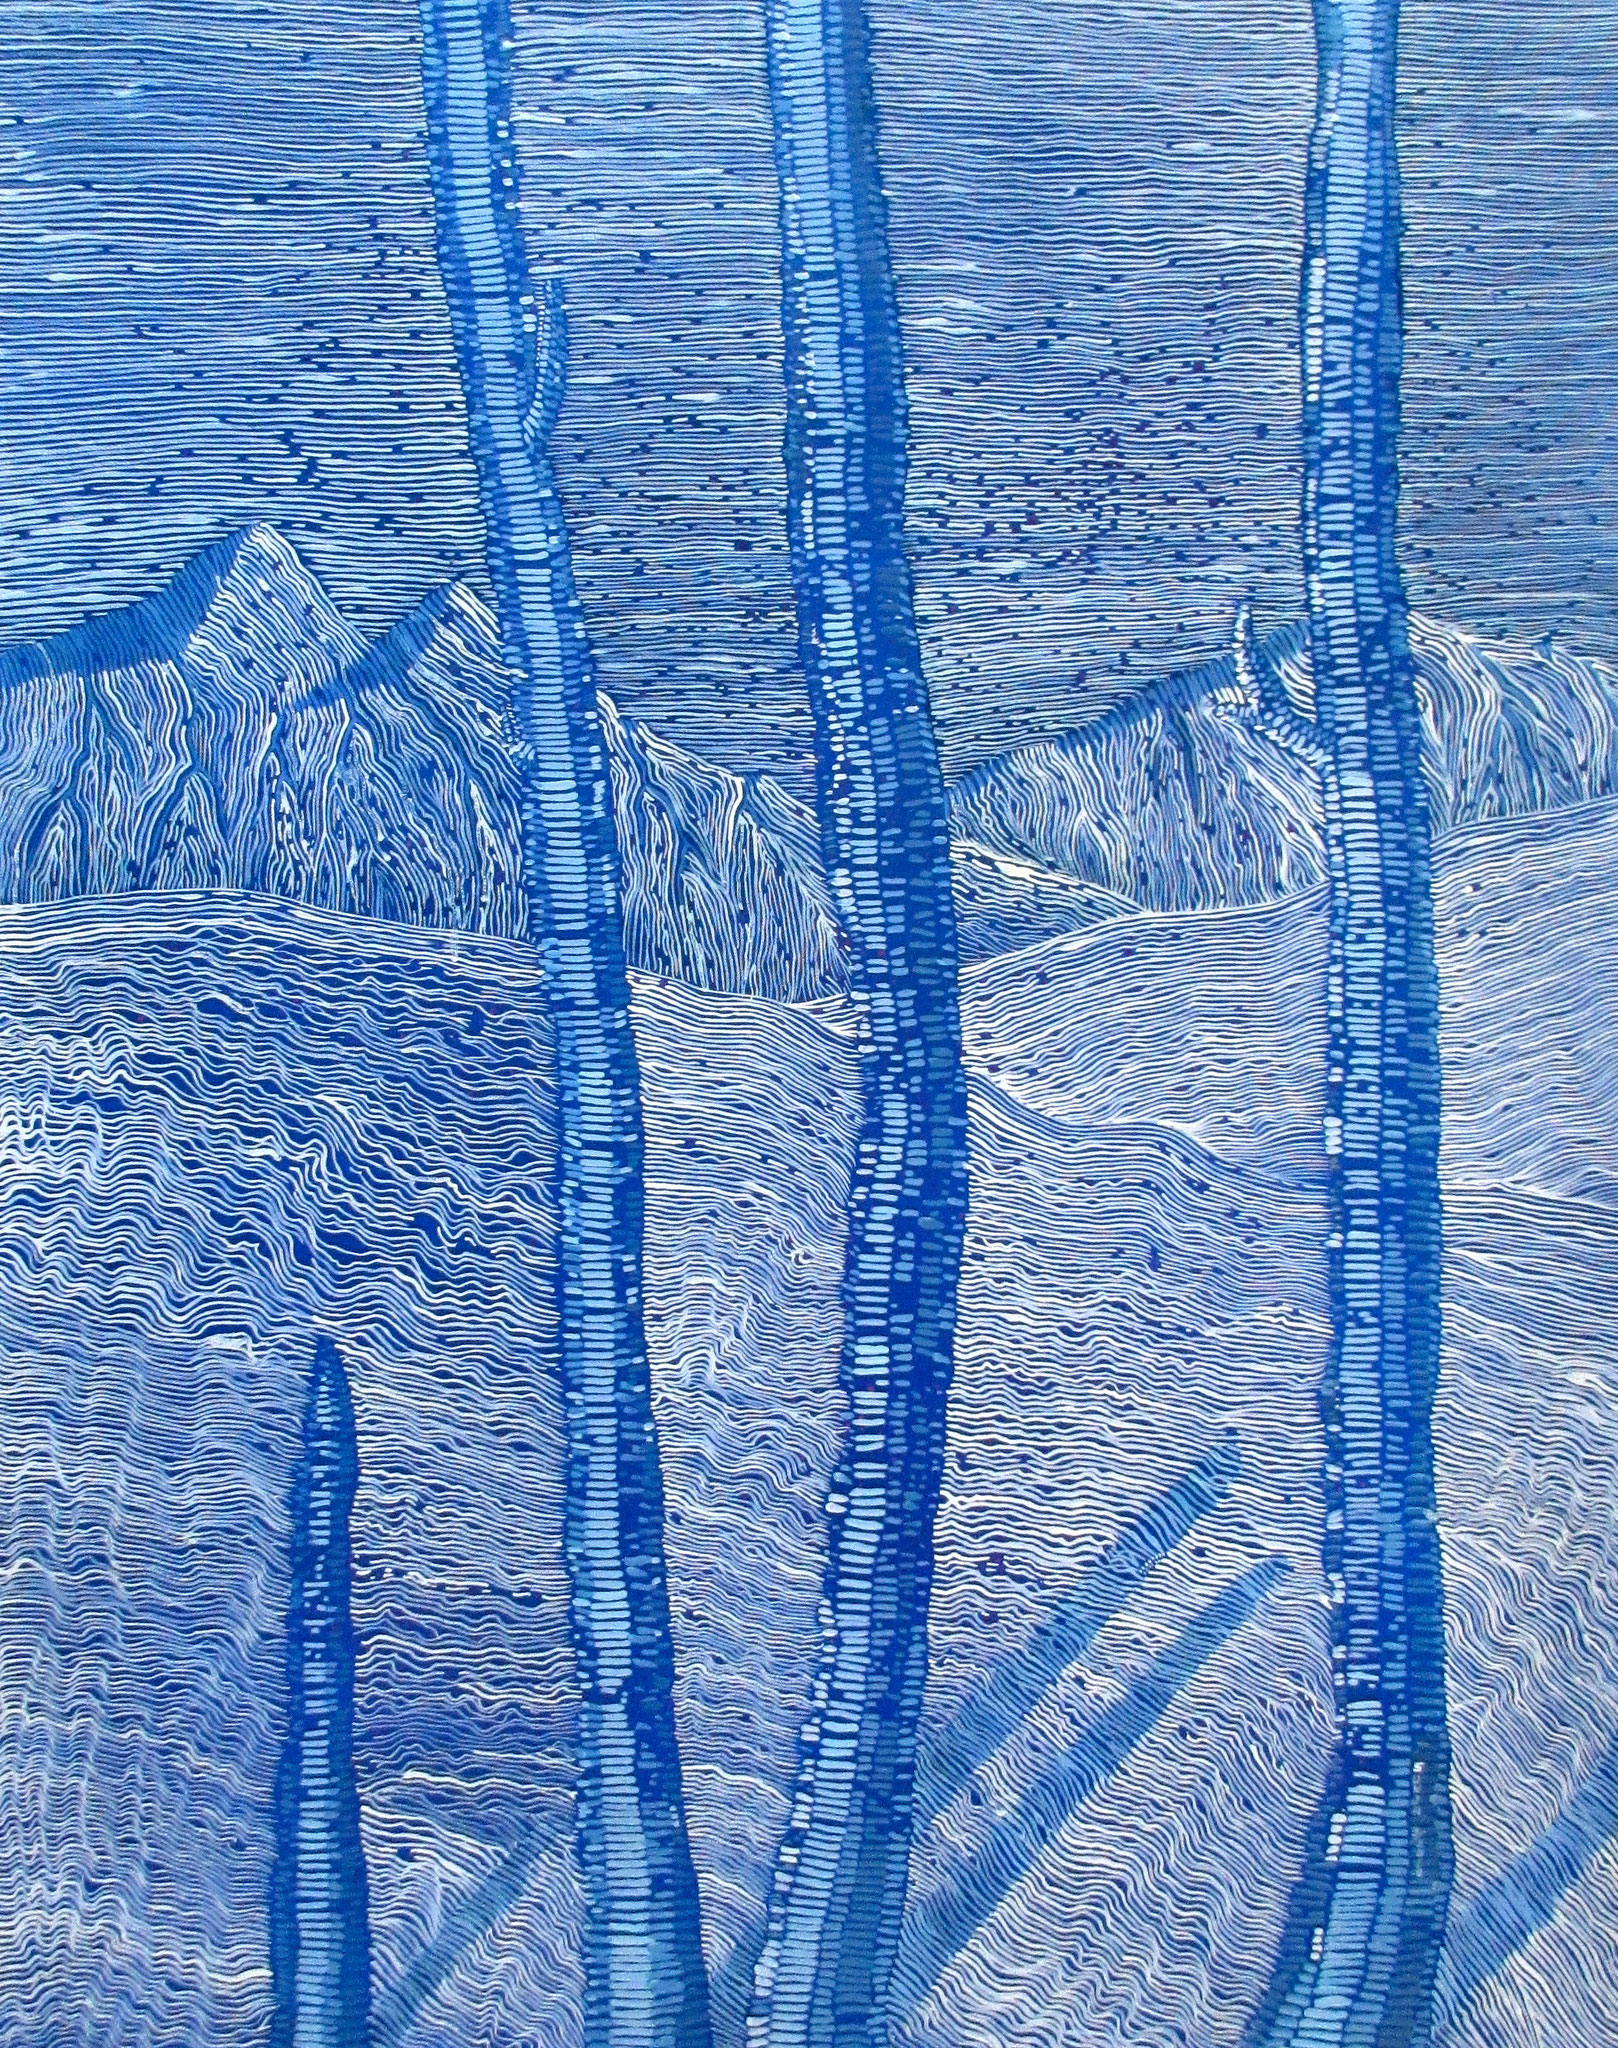 """#454 - """"Snow"""" (Fibrous Series), oil on canvas 24x30, March 2018"""